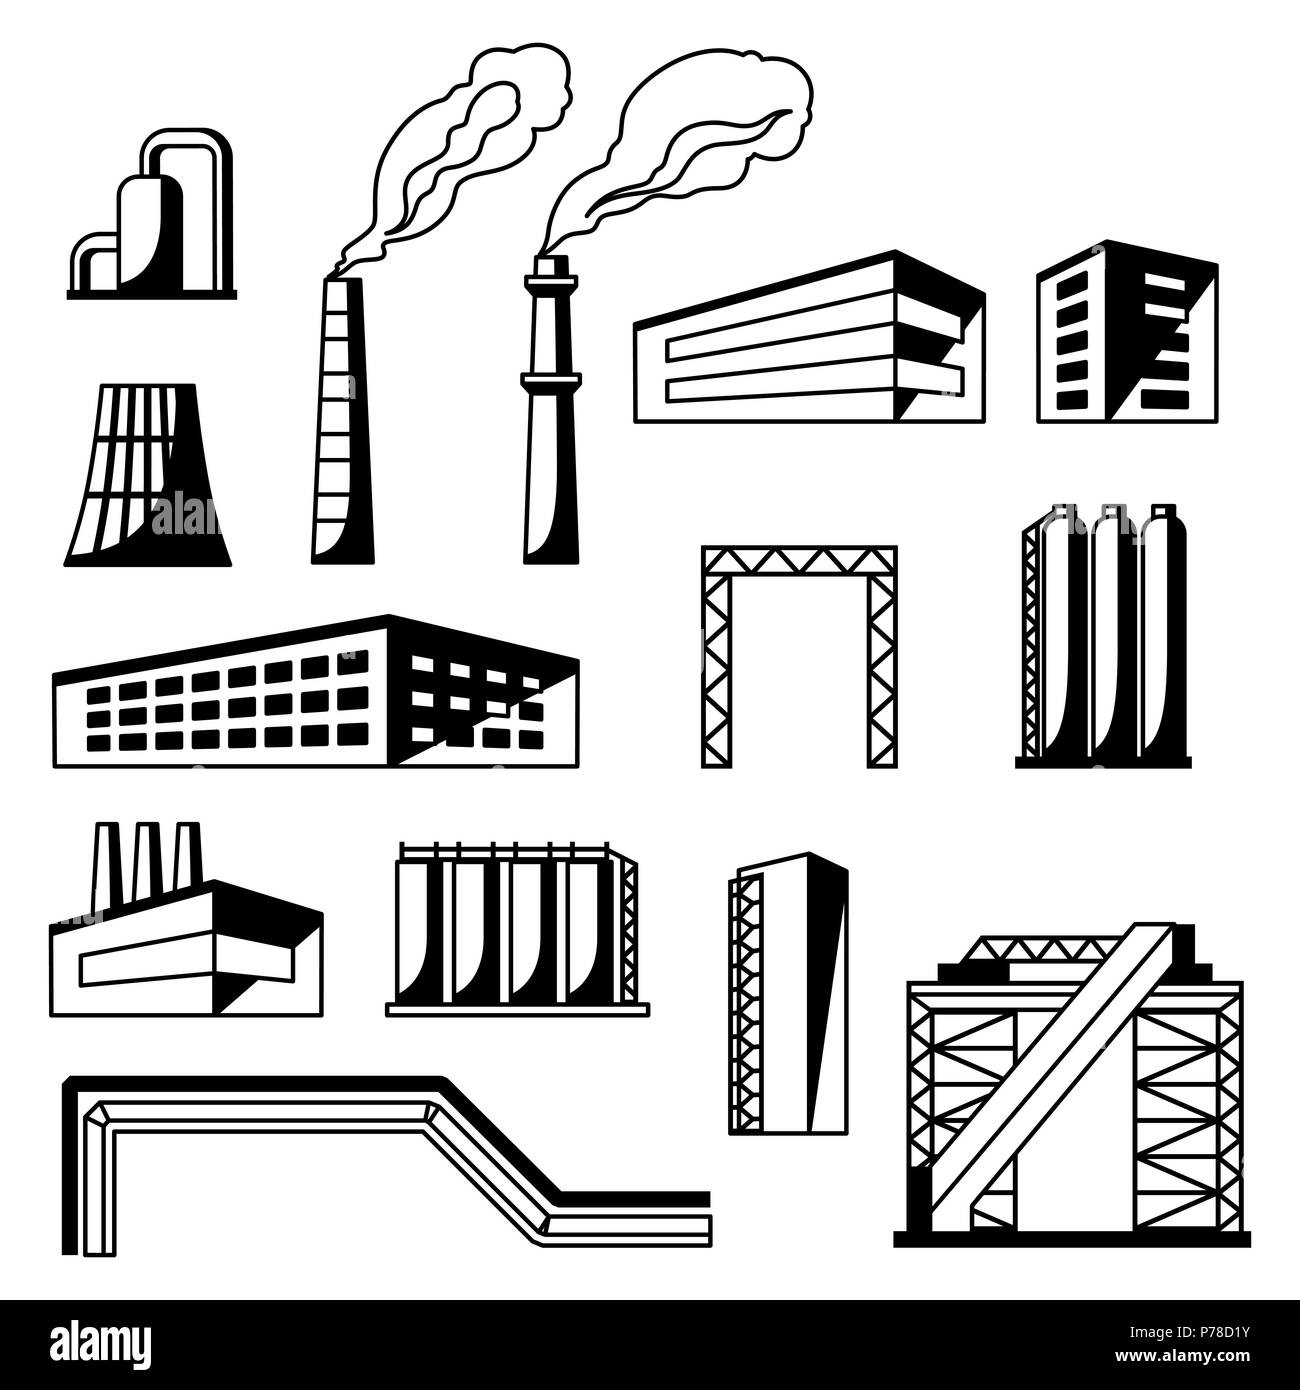 Industrial factory objects set. - Stock Image